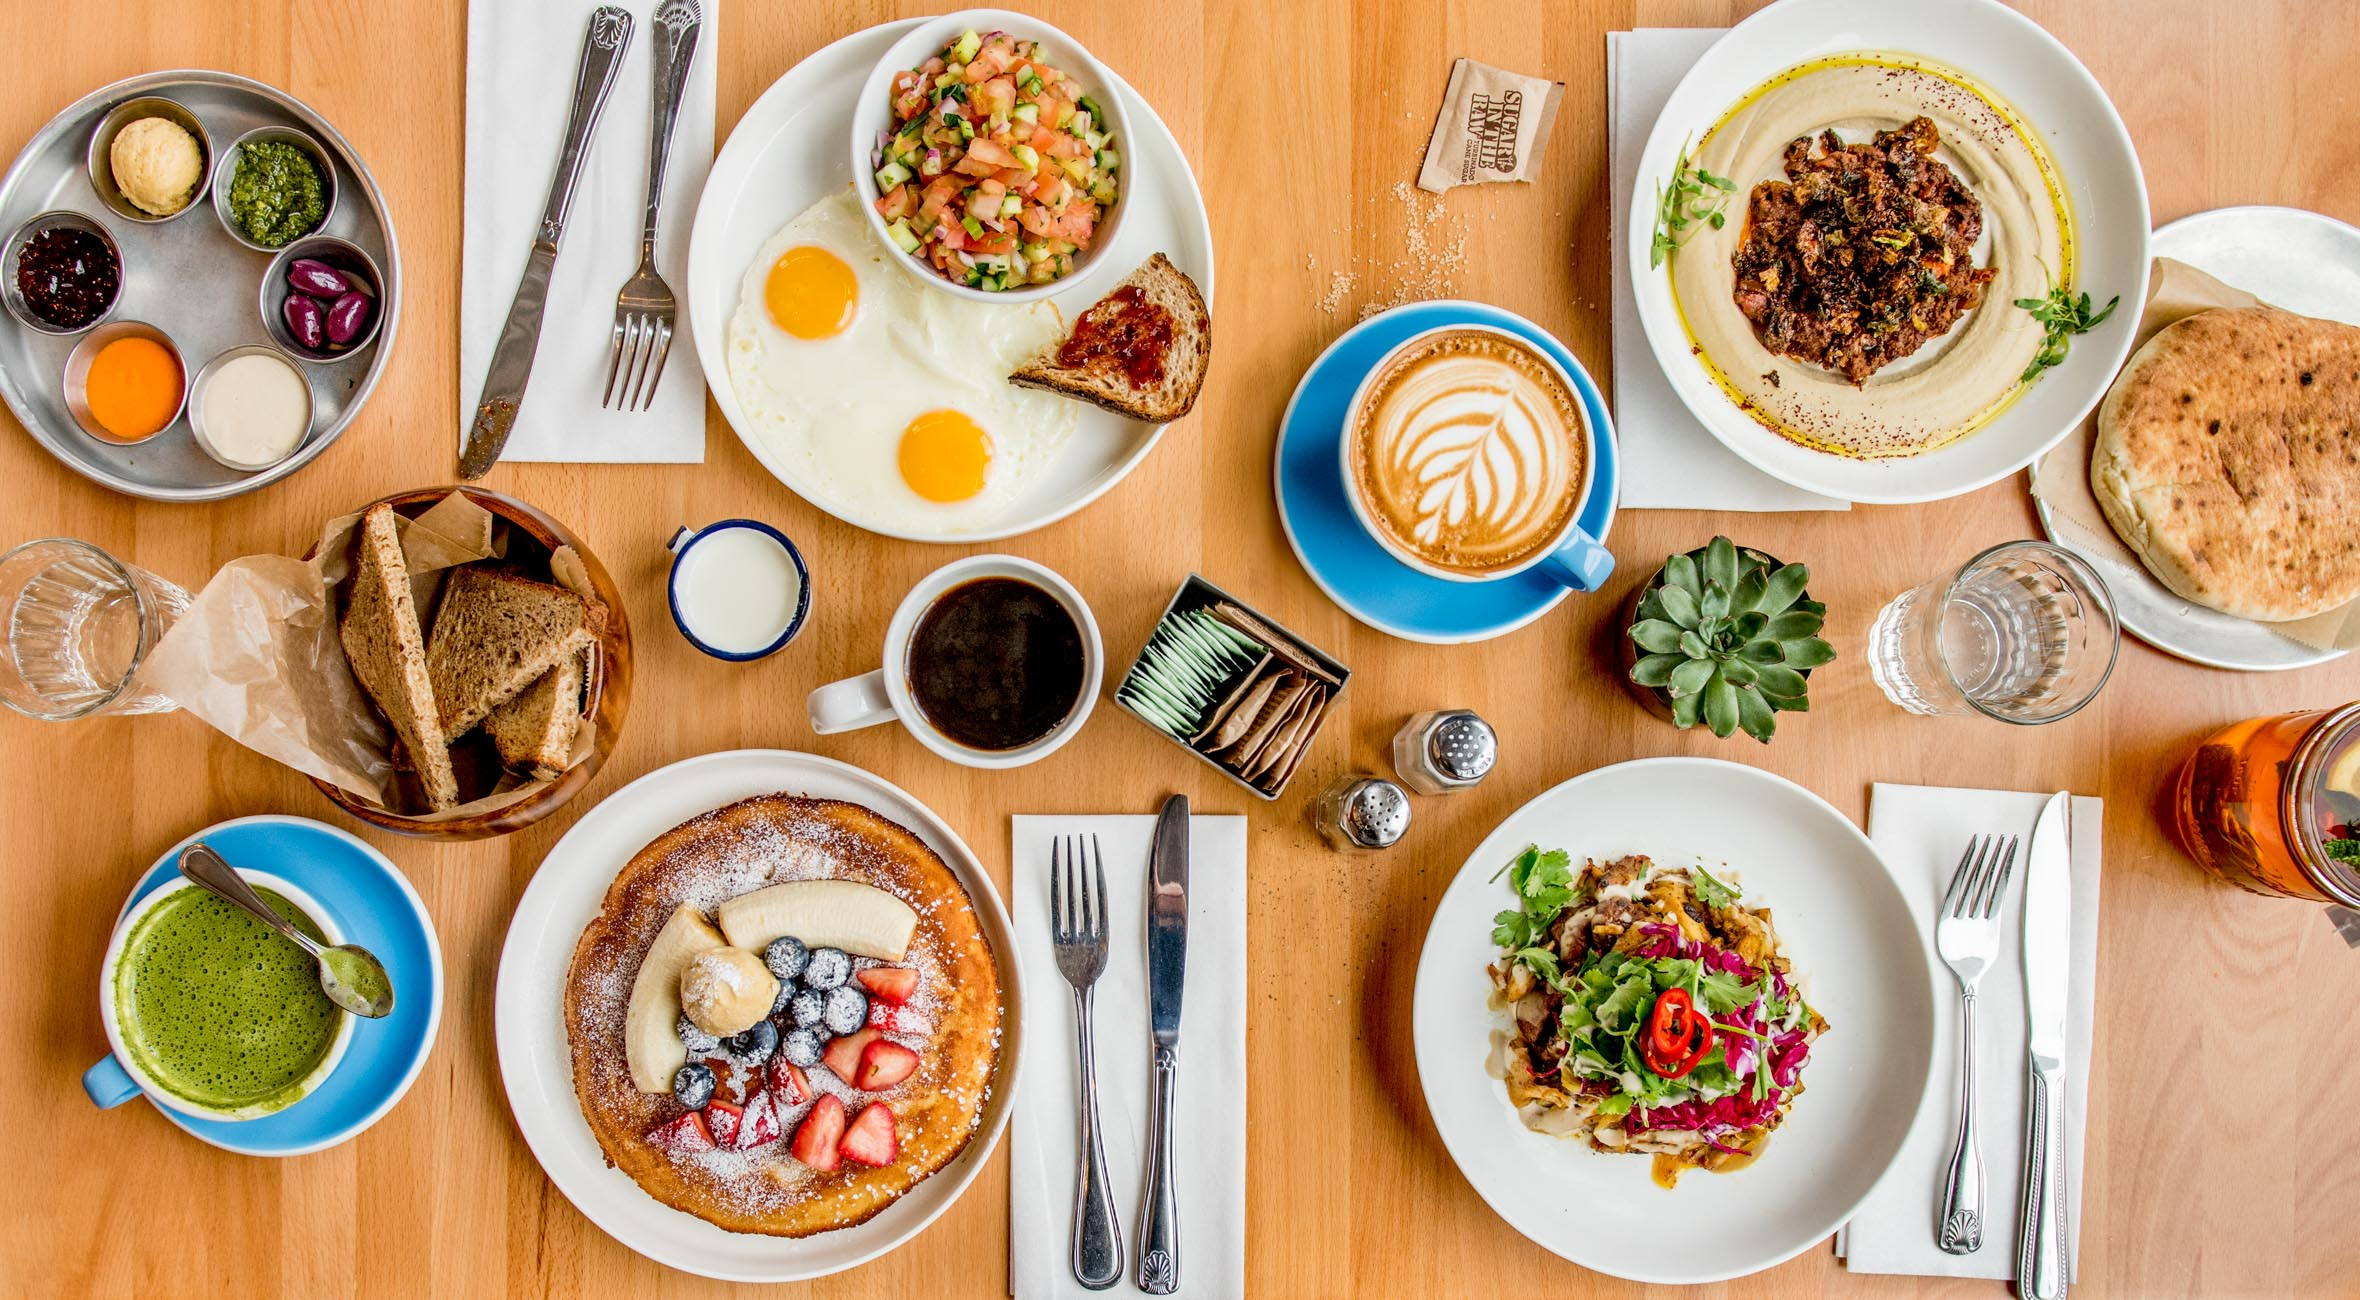 Brunch and Drinks for 2 persons at Top-Rated Reunion in Williamsburg